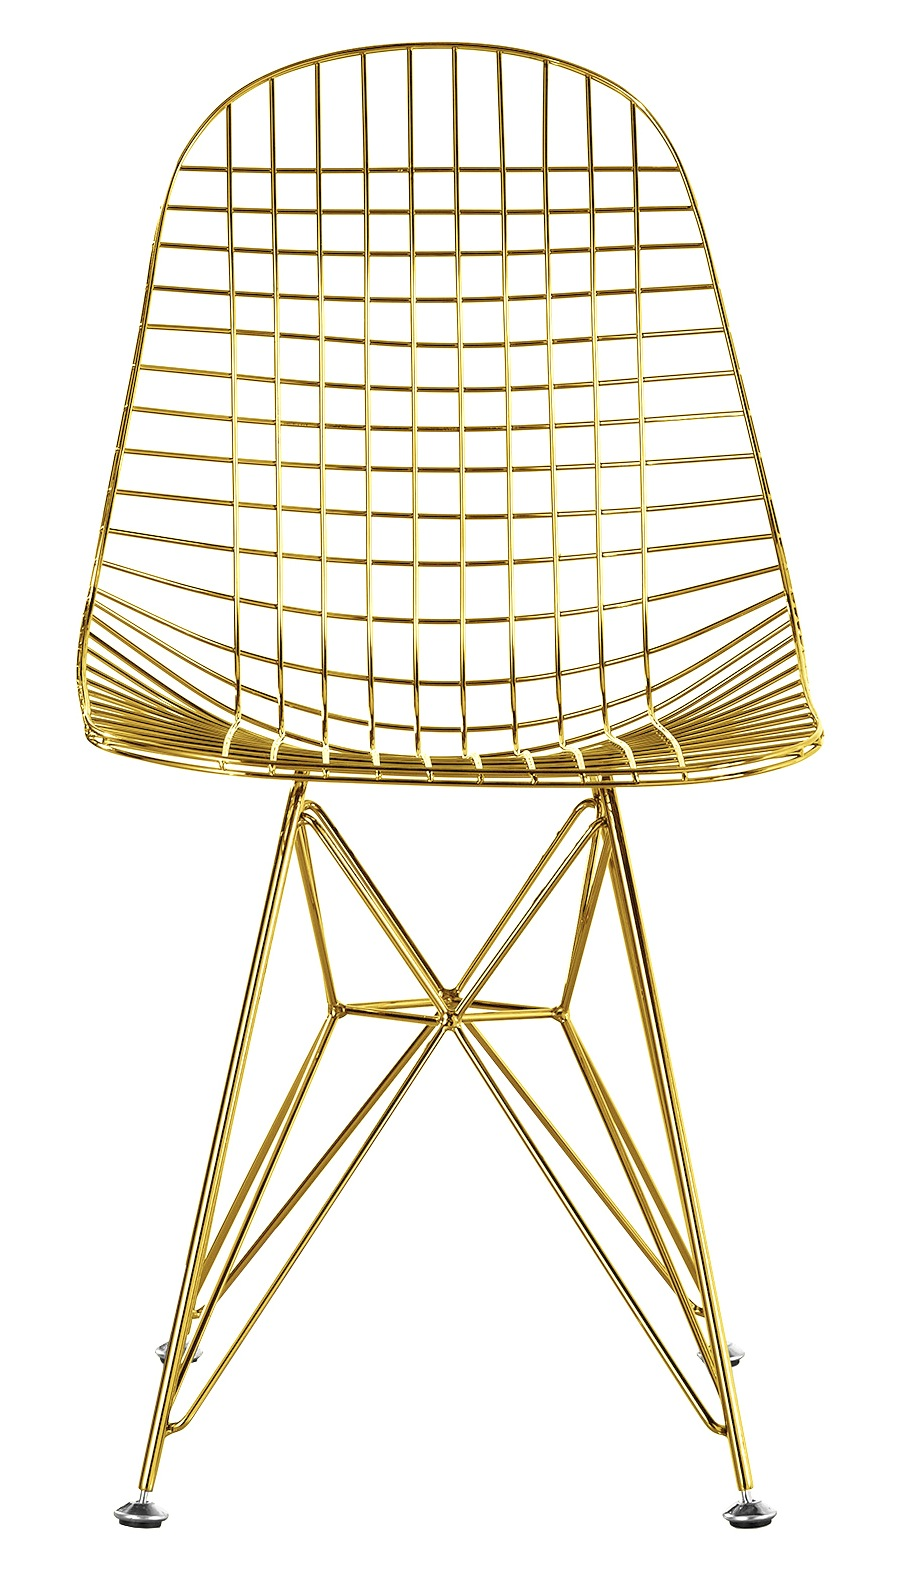 wire-chair-without-cushion-gold-finish.jpg